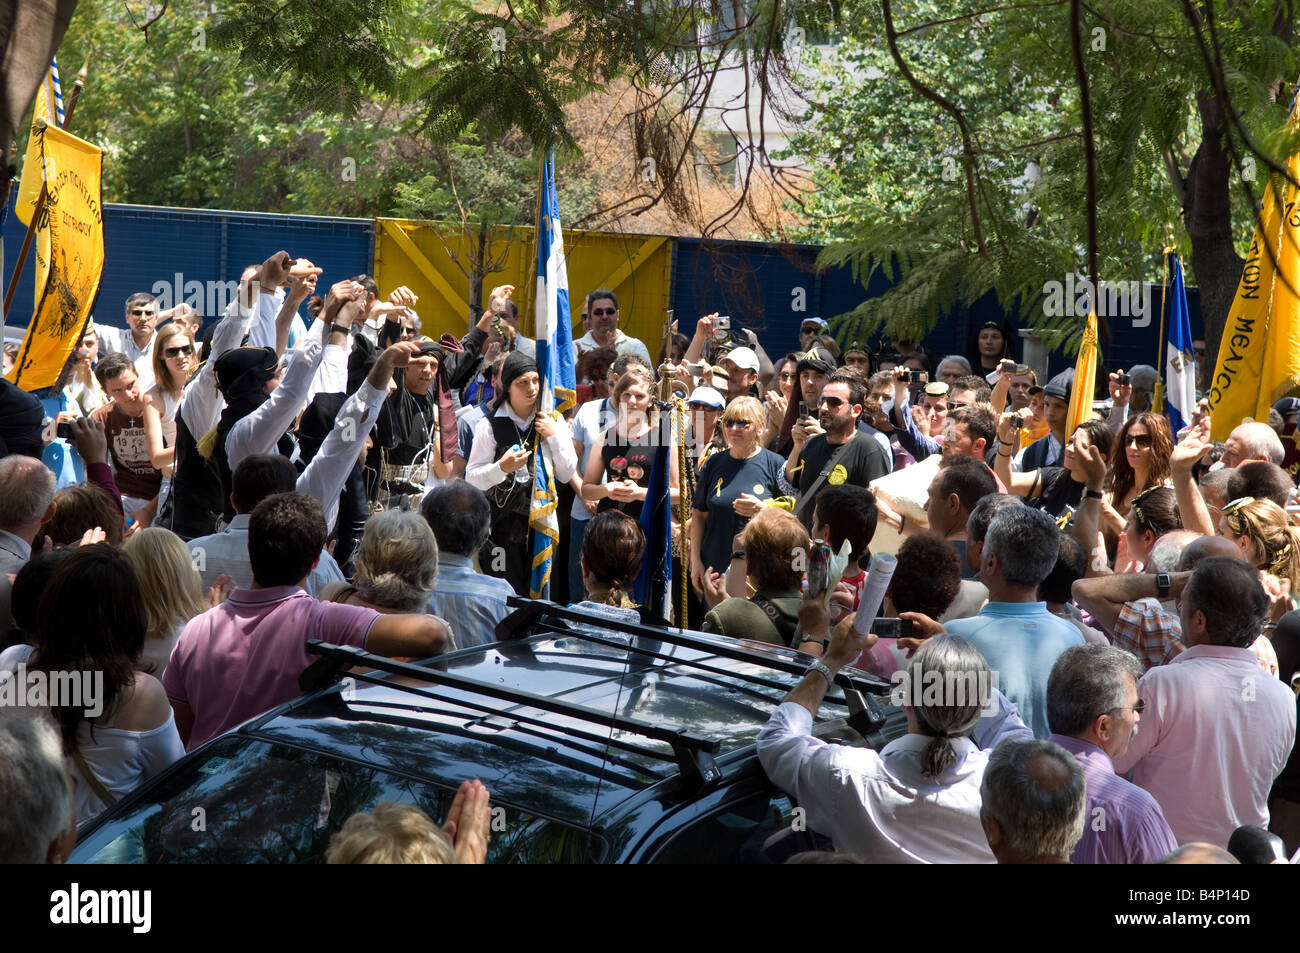 Protest at Turkish Ambassy in Athens against denial of Pondos and Asia Minor massacre - Stock Image